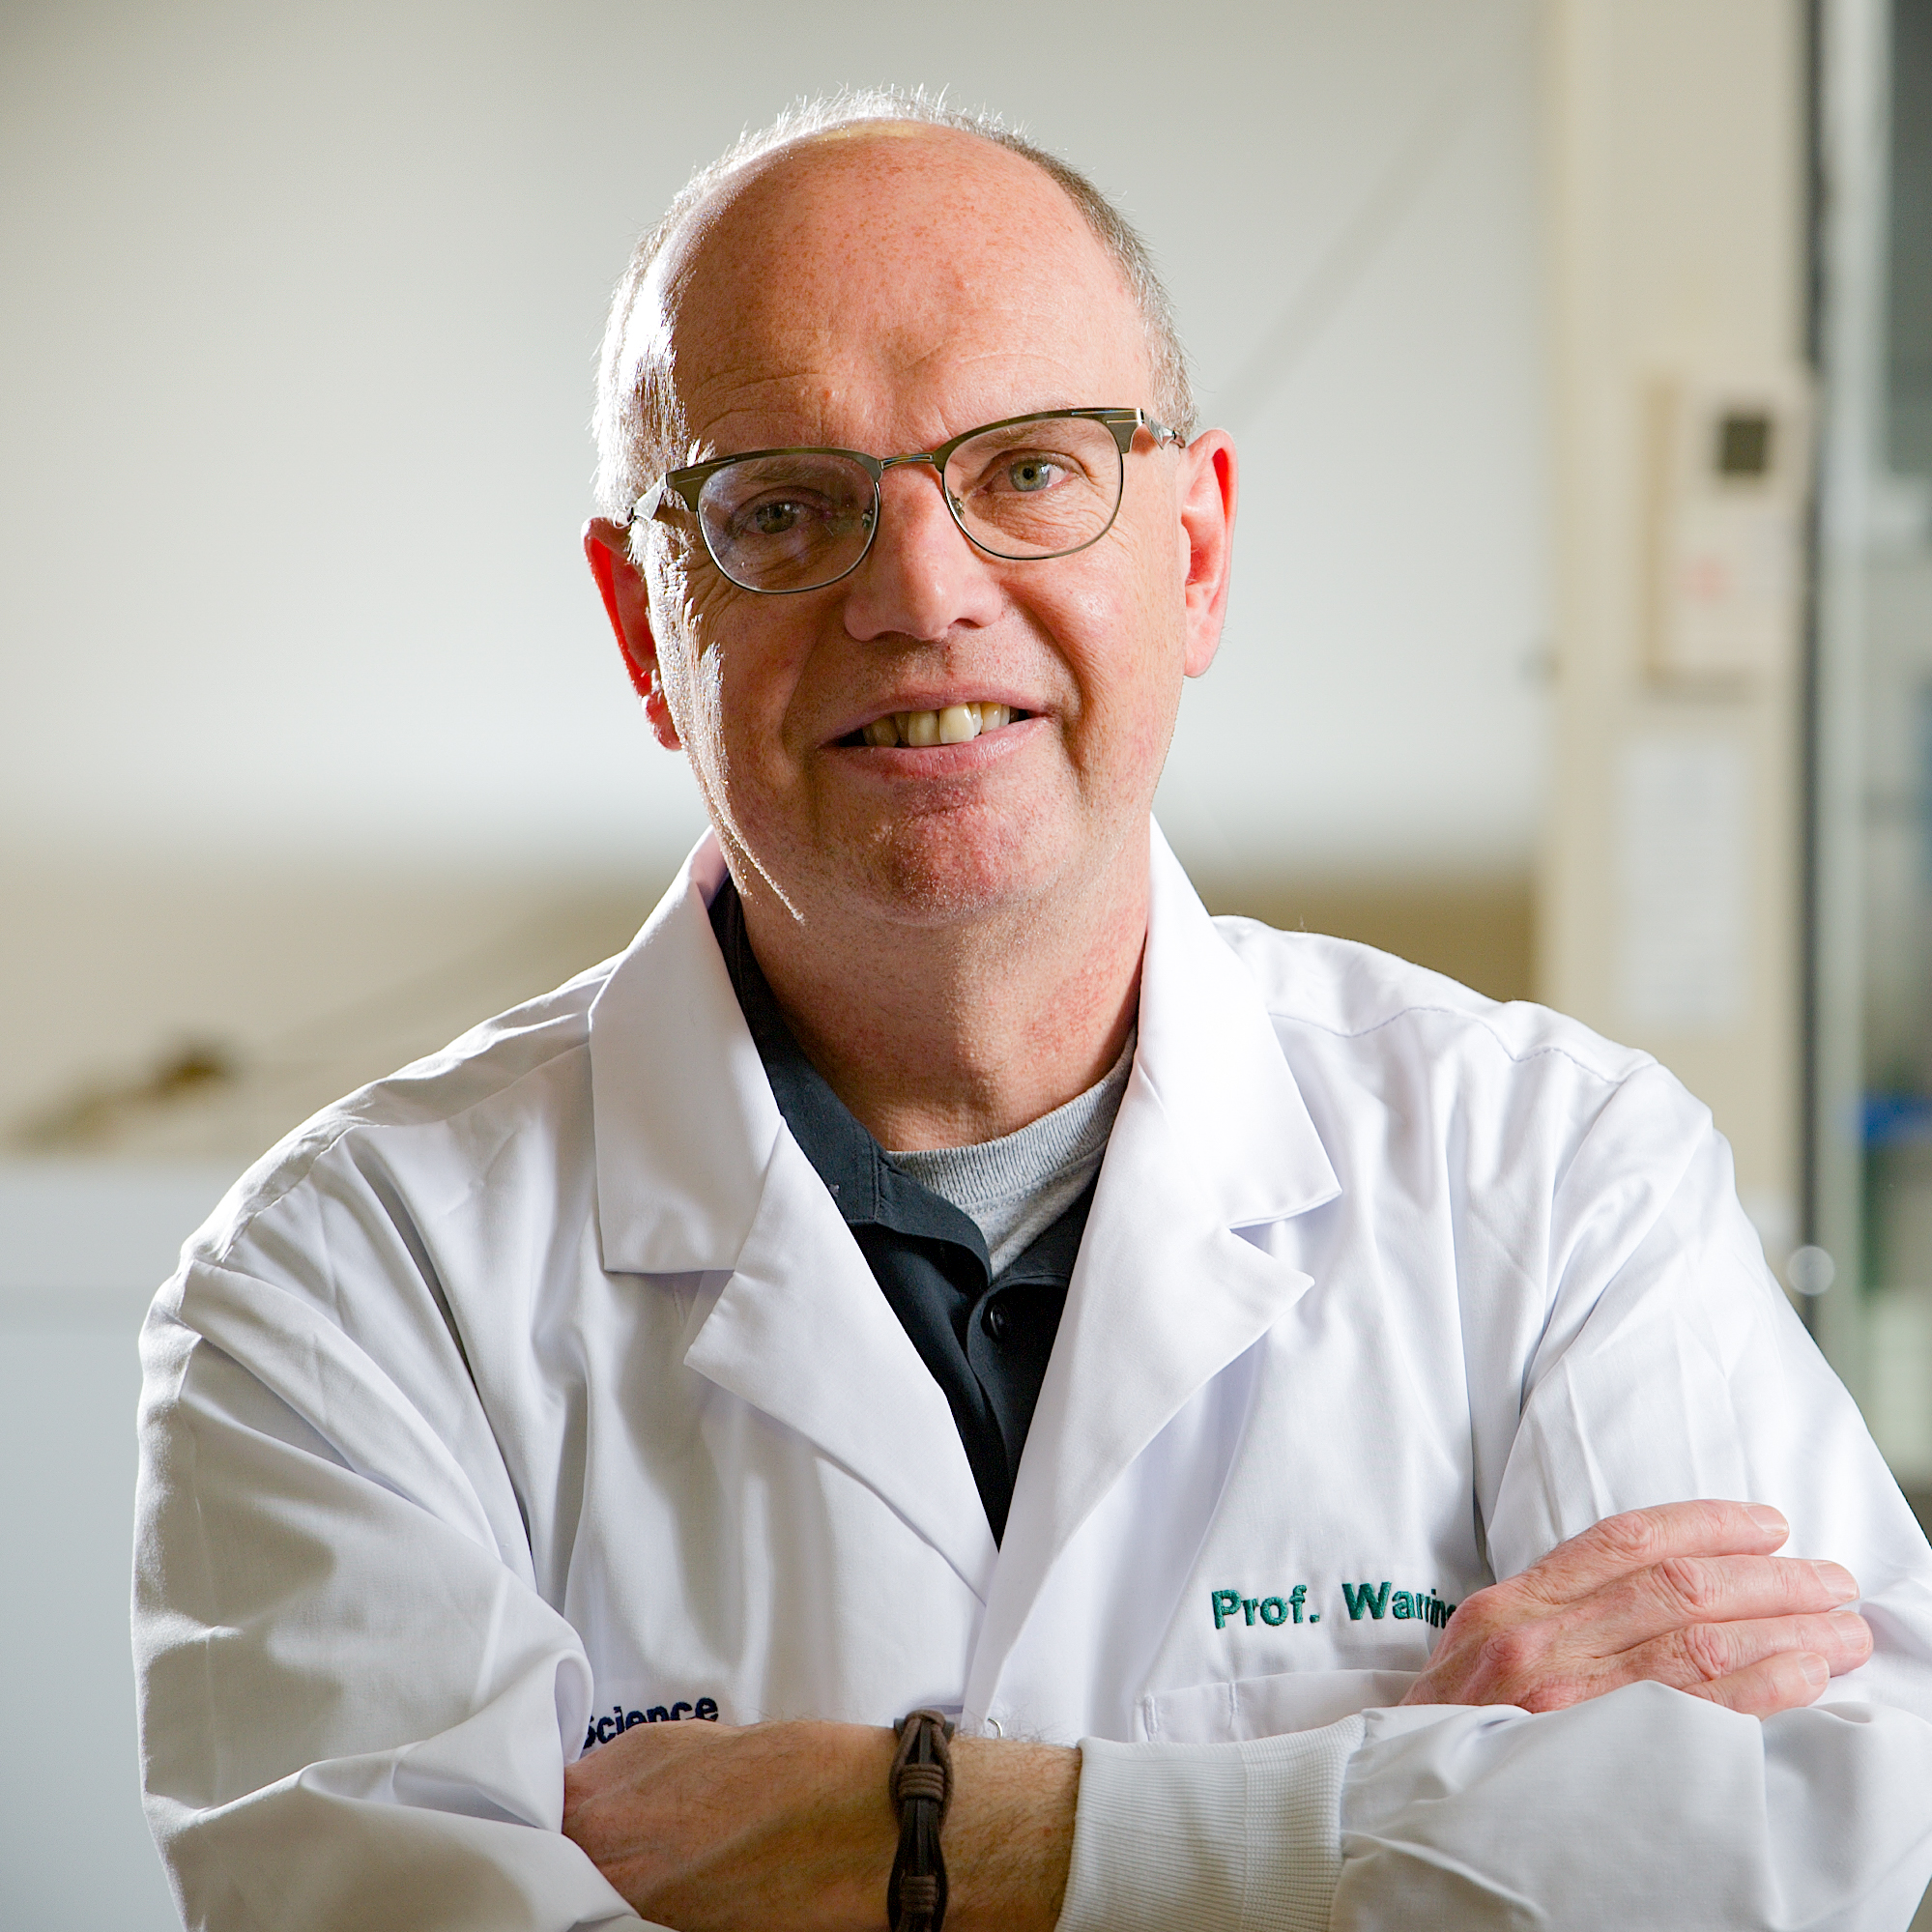 Portrait in the lab of professor Keith Warriner